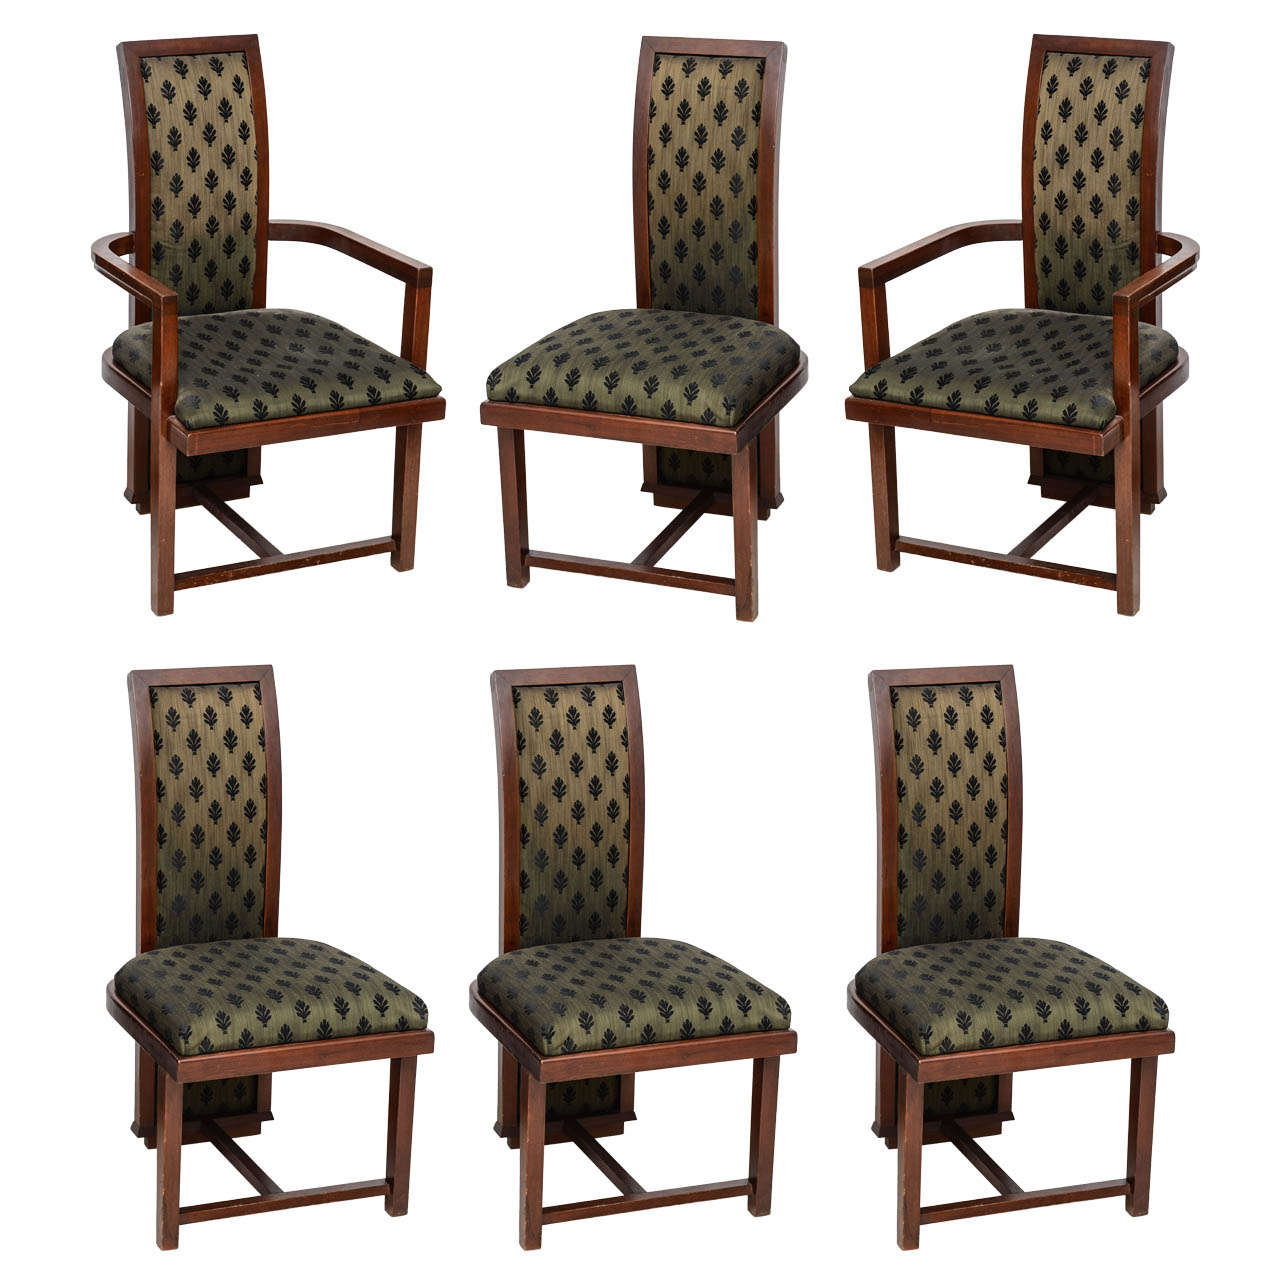 Lovely Set Of 12 Frank Lloyd Wright Taliesin Mahogany Dining Chairs By Henredon 1